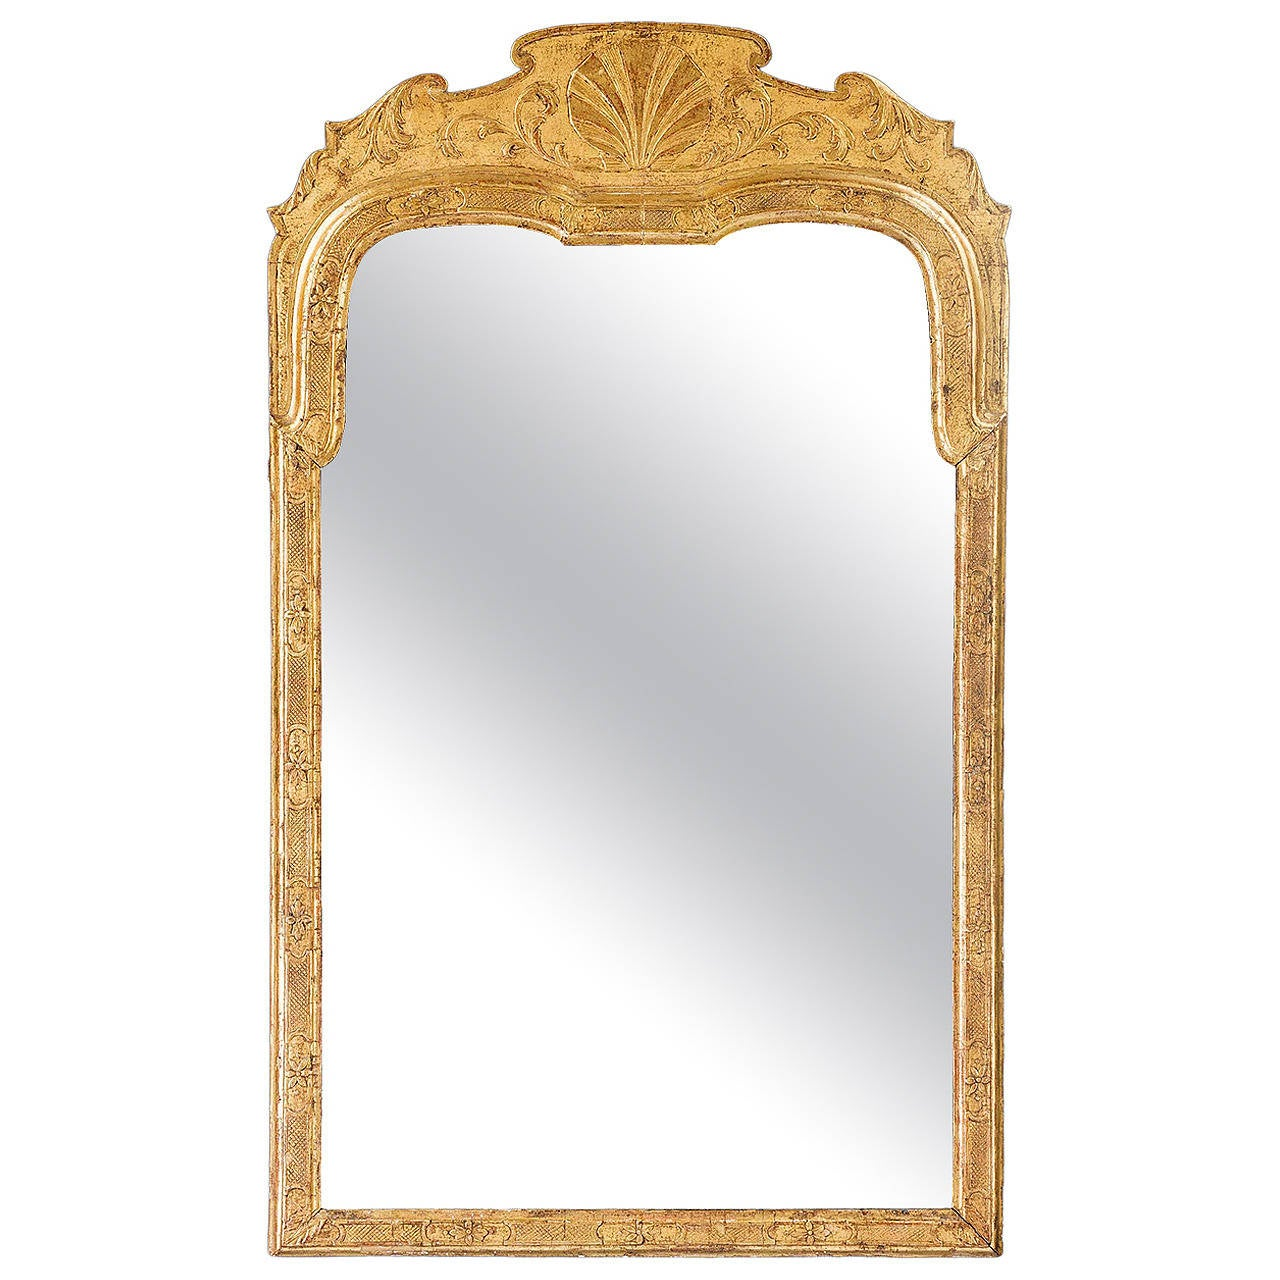 Queen Anne Period GIltwood Mirror